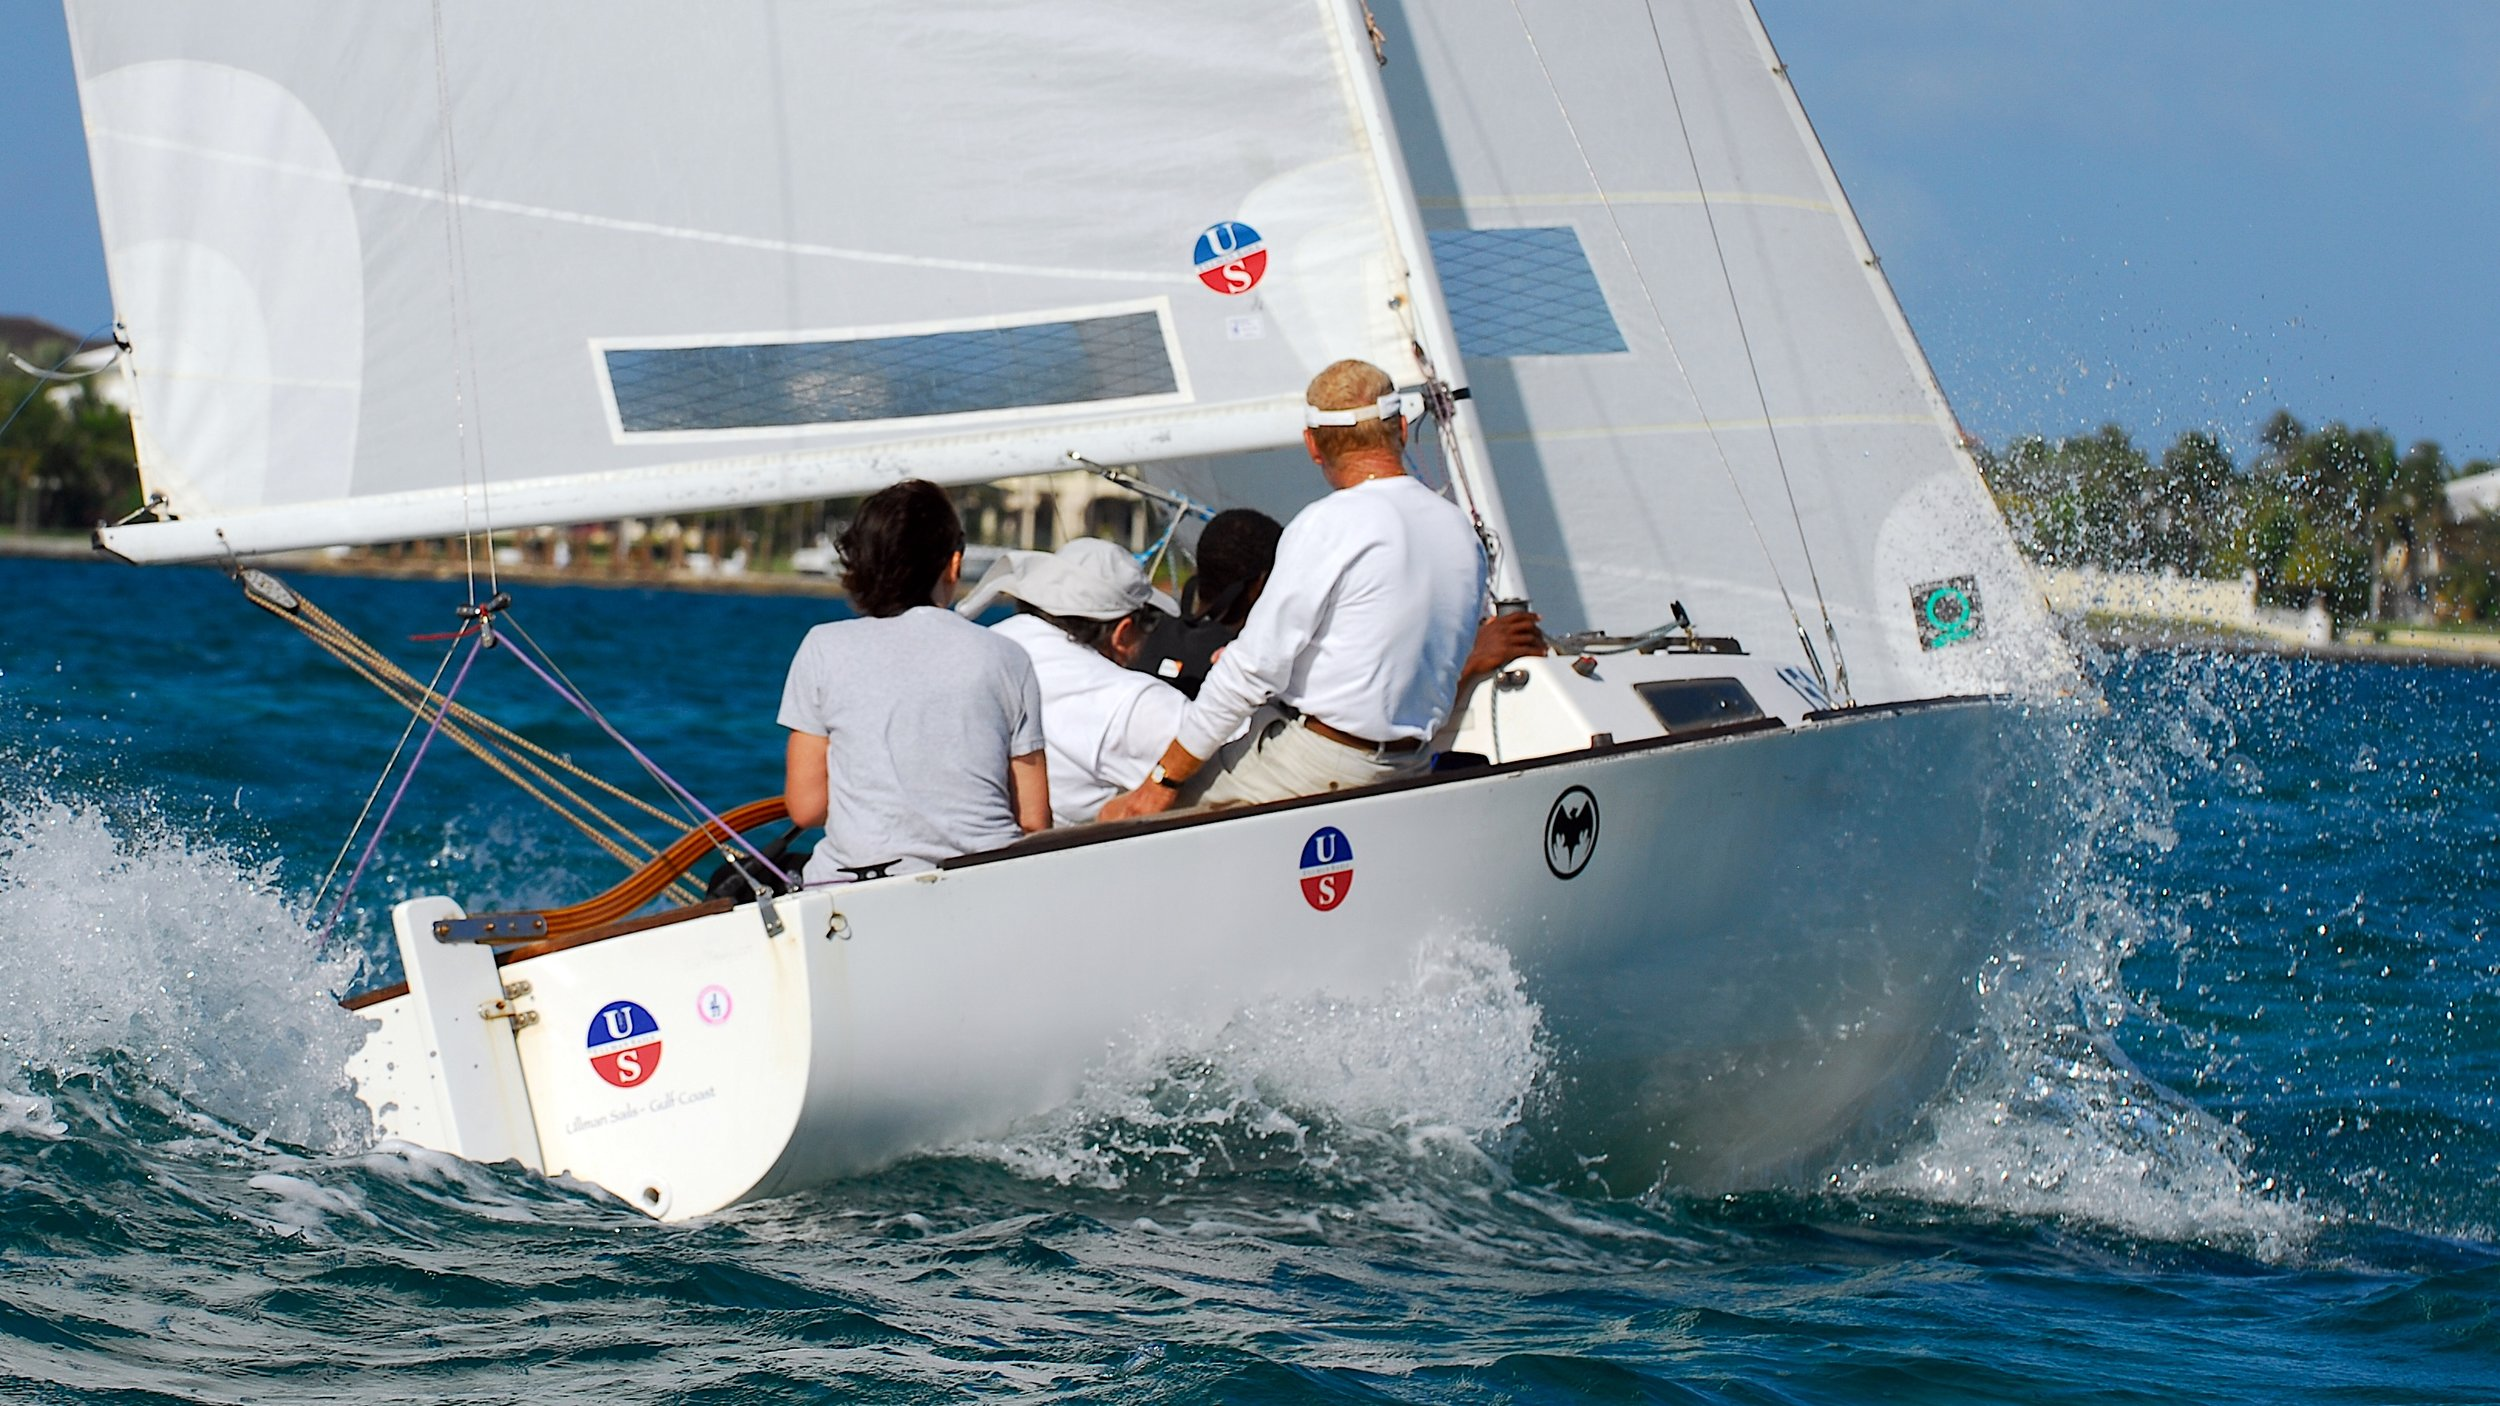 J22 MATCH RACING ALTS - MAR 2012  34831.jpg